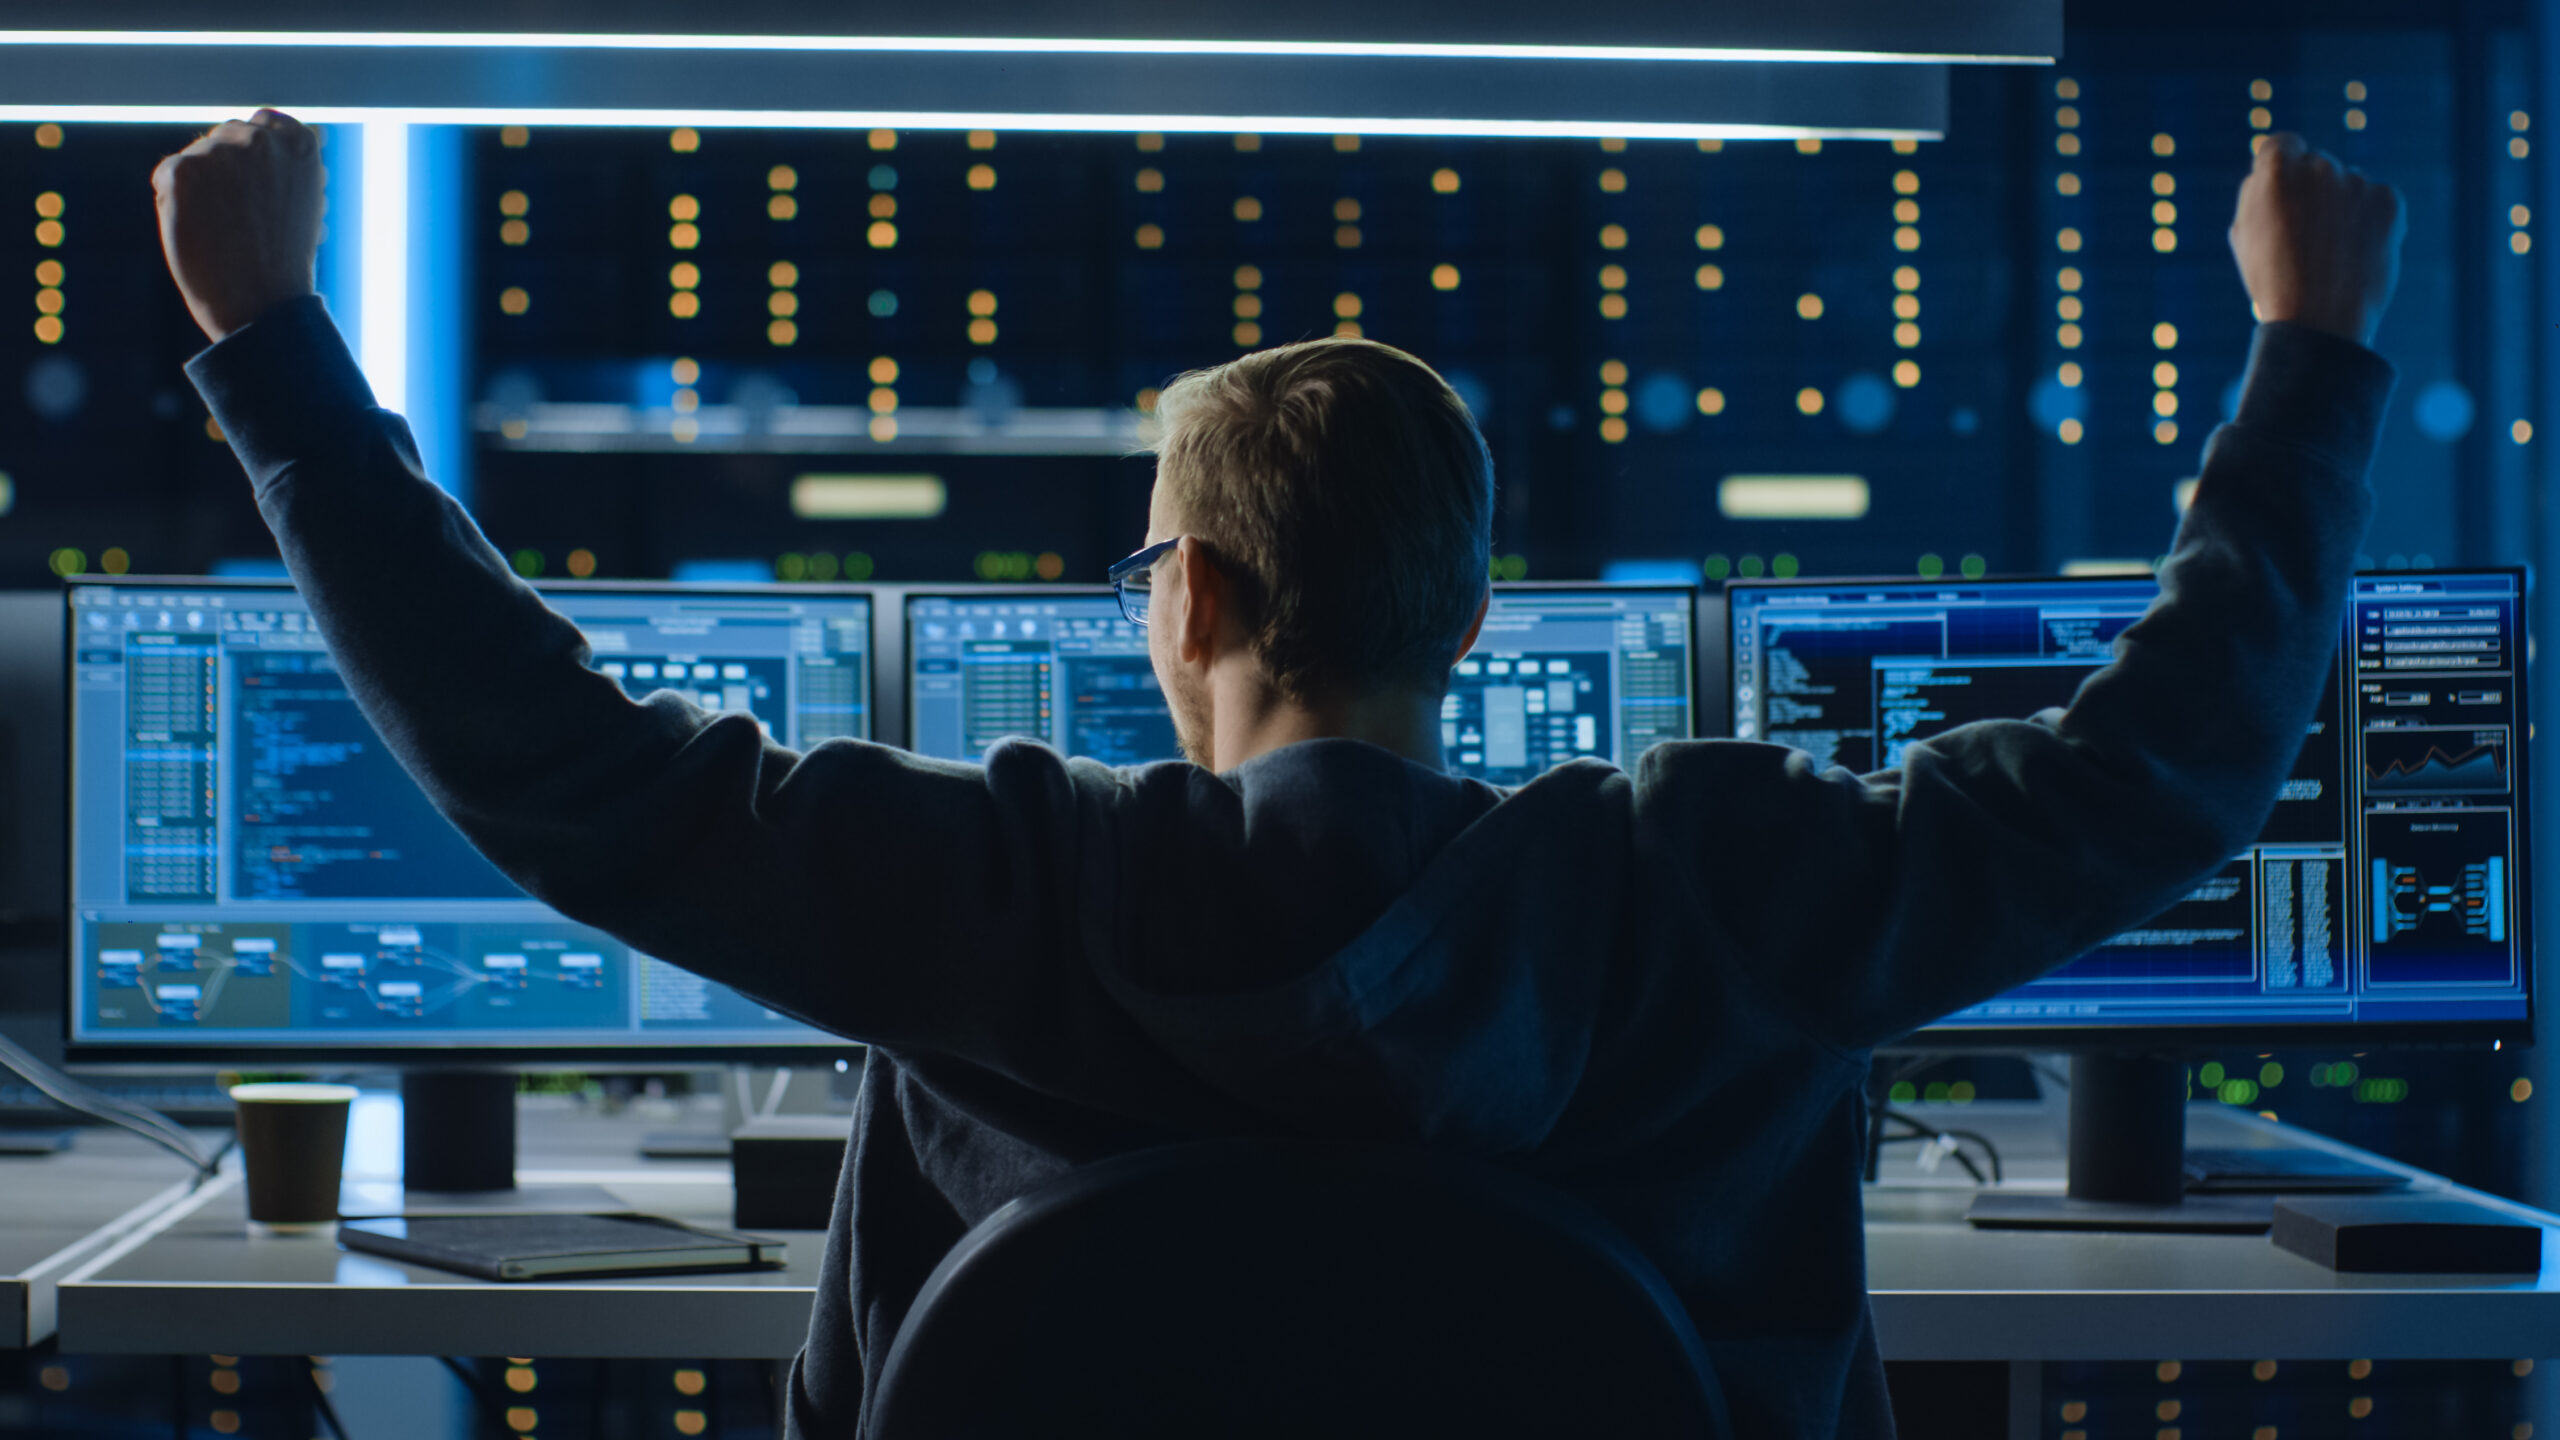 IT Specialist Working on Personal Computer with Monitors Showing Coding Language Program, He Celebrates His Success by Doing YES Gesture. Technical Room of Data Center.